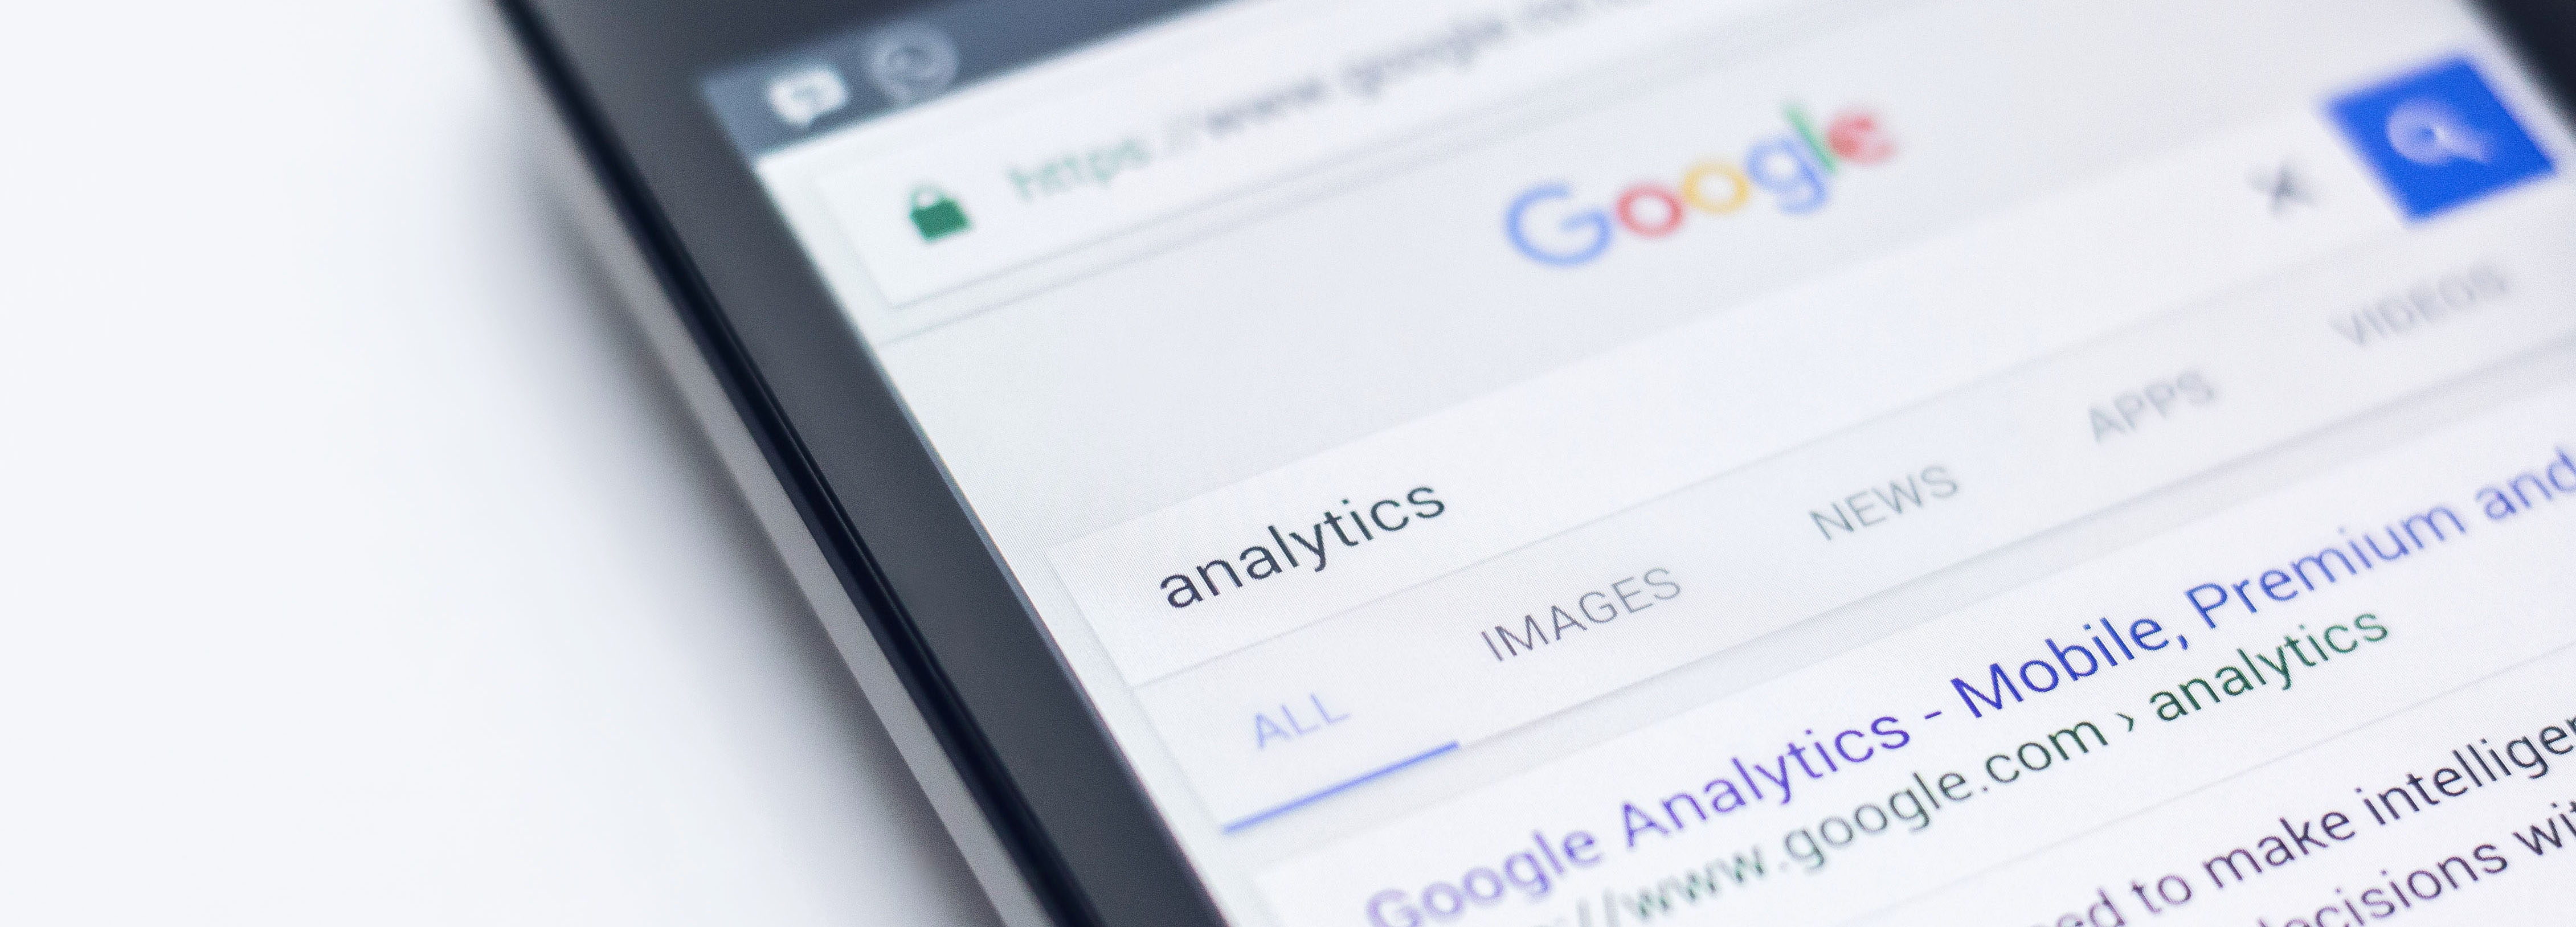 Google-search-analytics-2.jpg